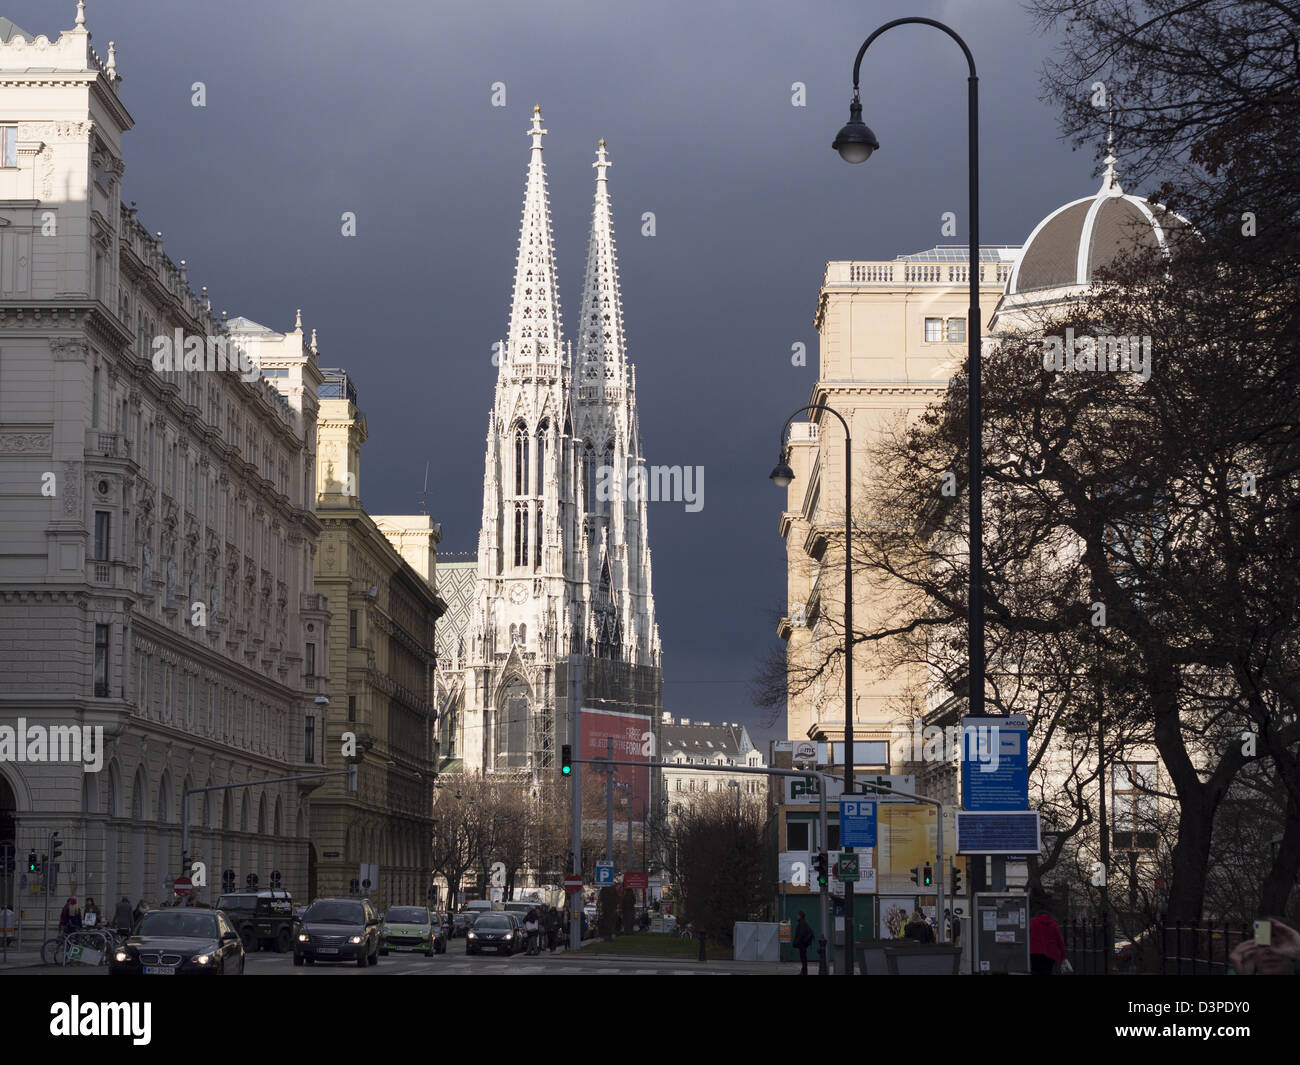 Votive Twin Towers and Ringstrasse. The bright stone of the filigreed towers of this landmark Vienna church highlighted - Stock Image